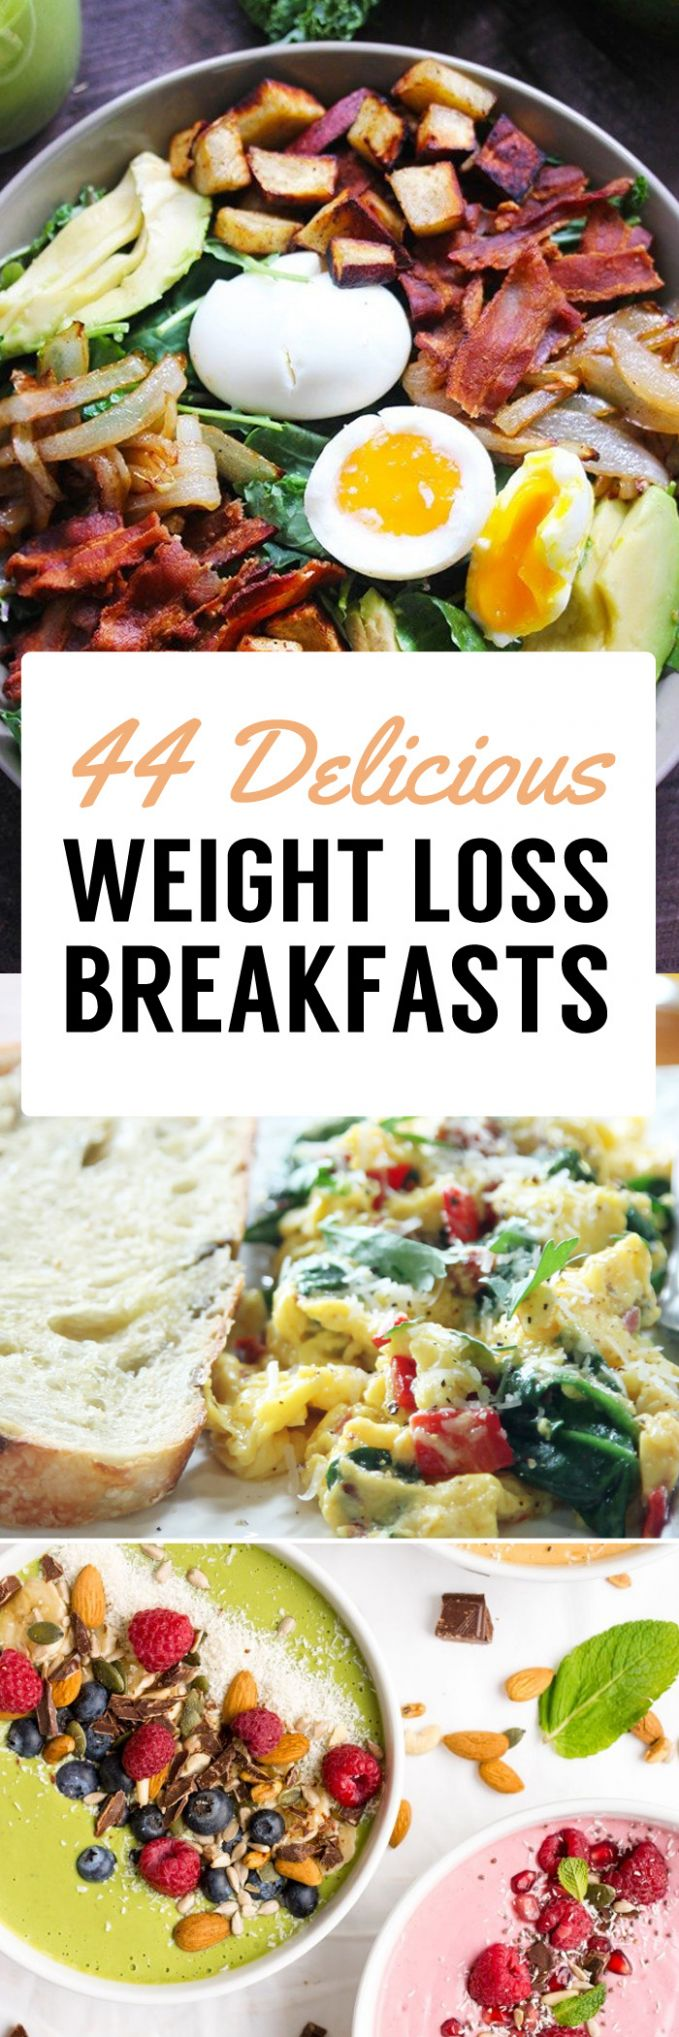 10 Weight Loss Breakfast Recipes To Jumpstart Your Fat Burning Day ..